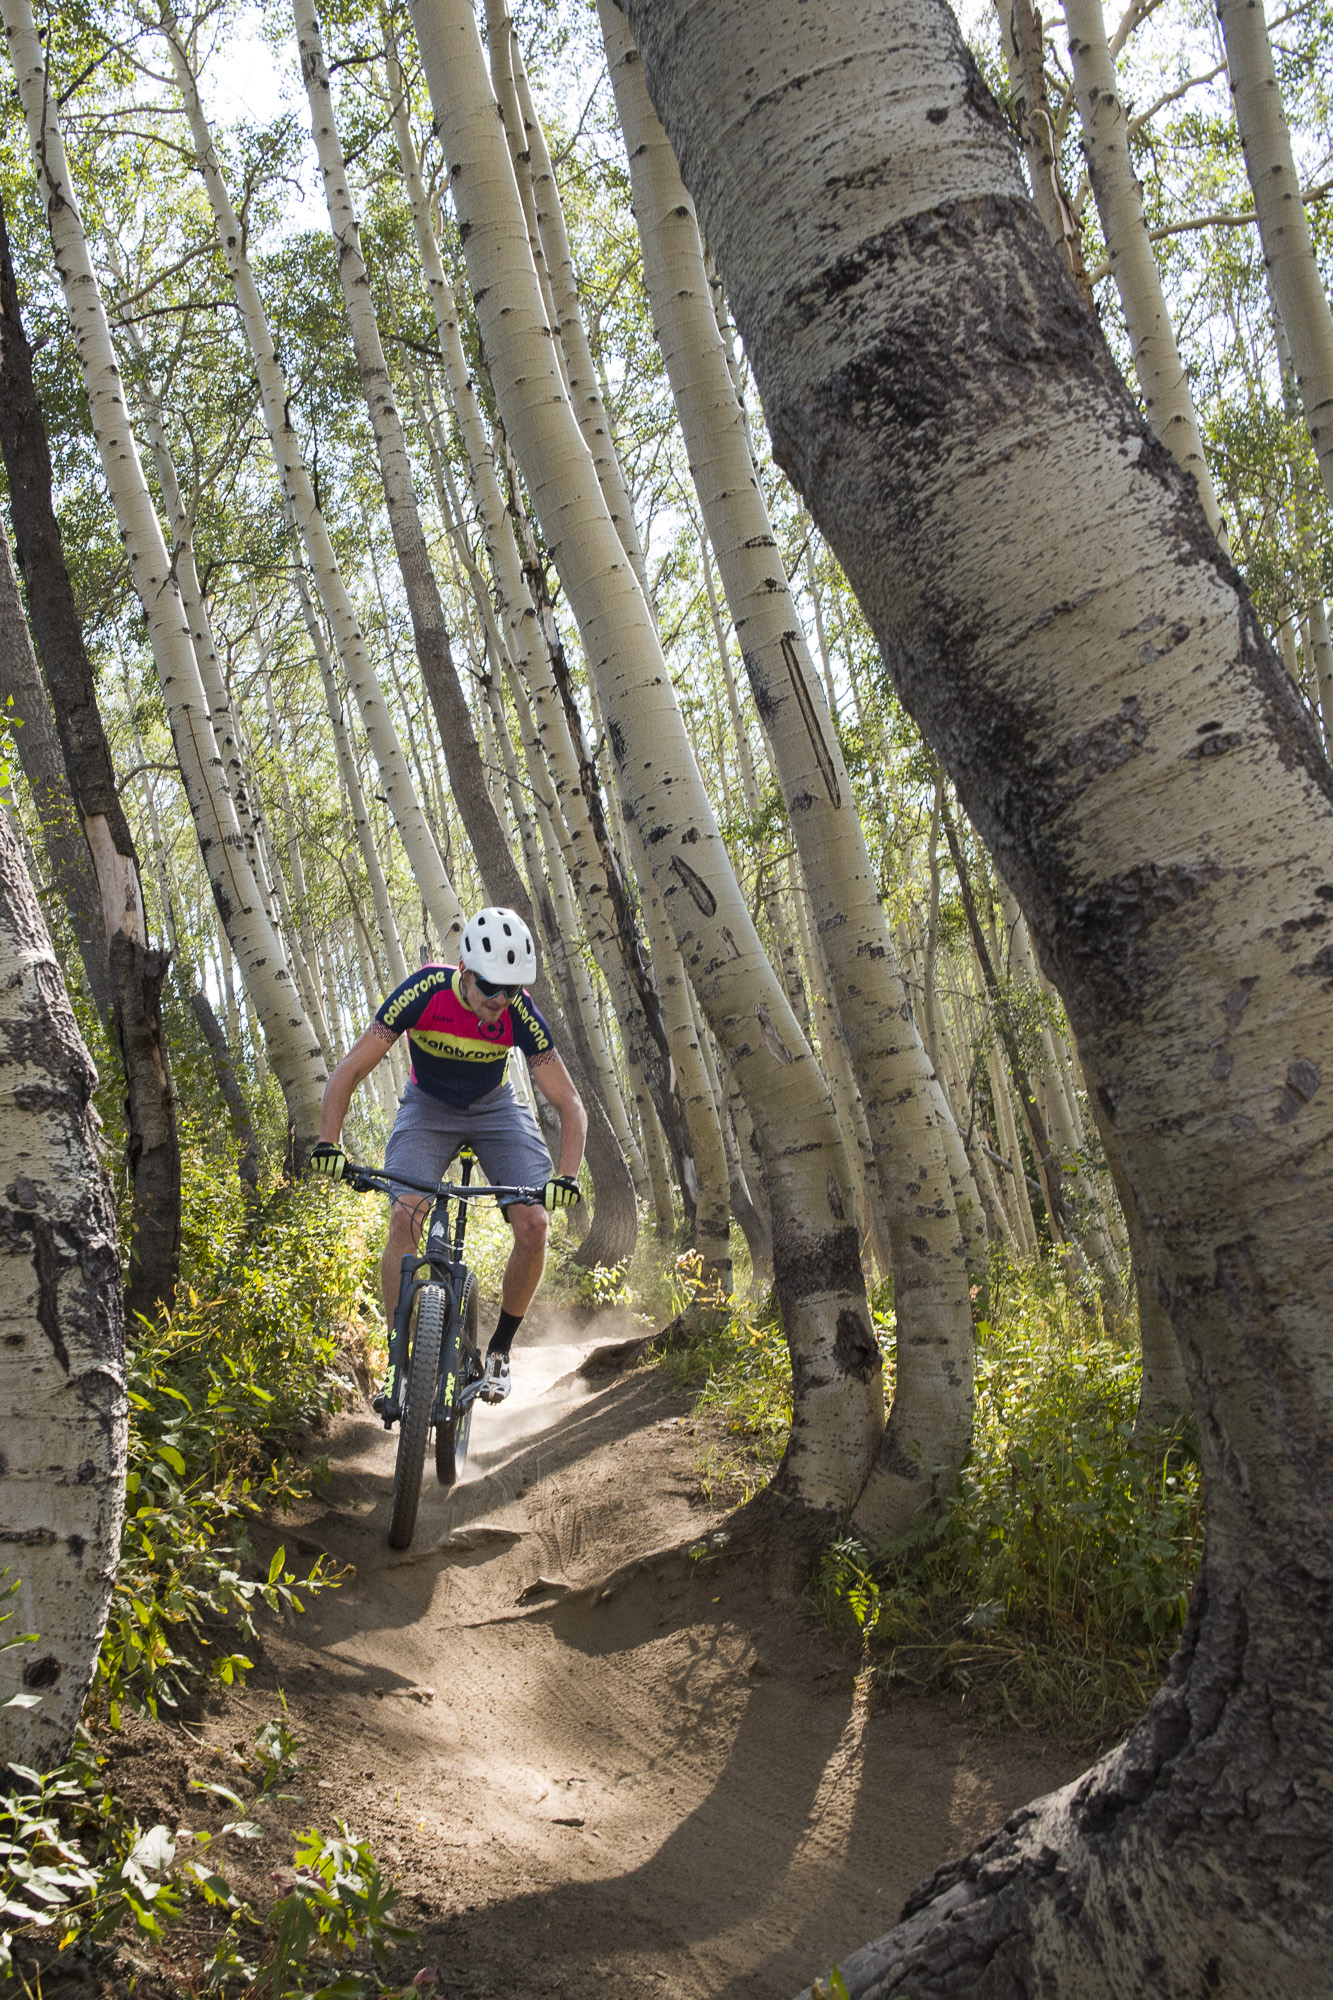 Miro riding single track through the aspens on the Crest Trail